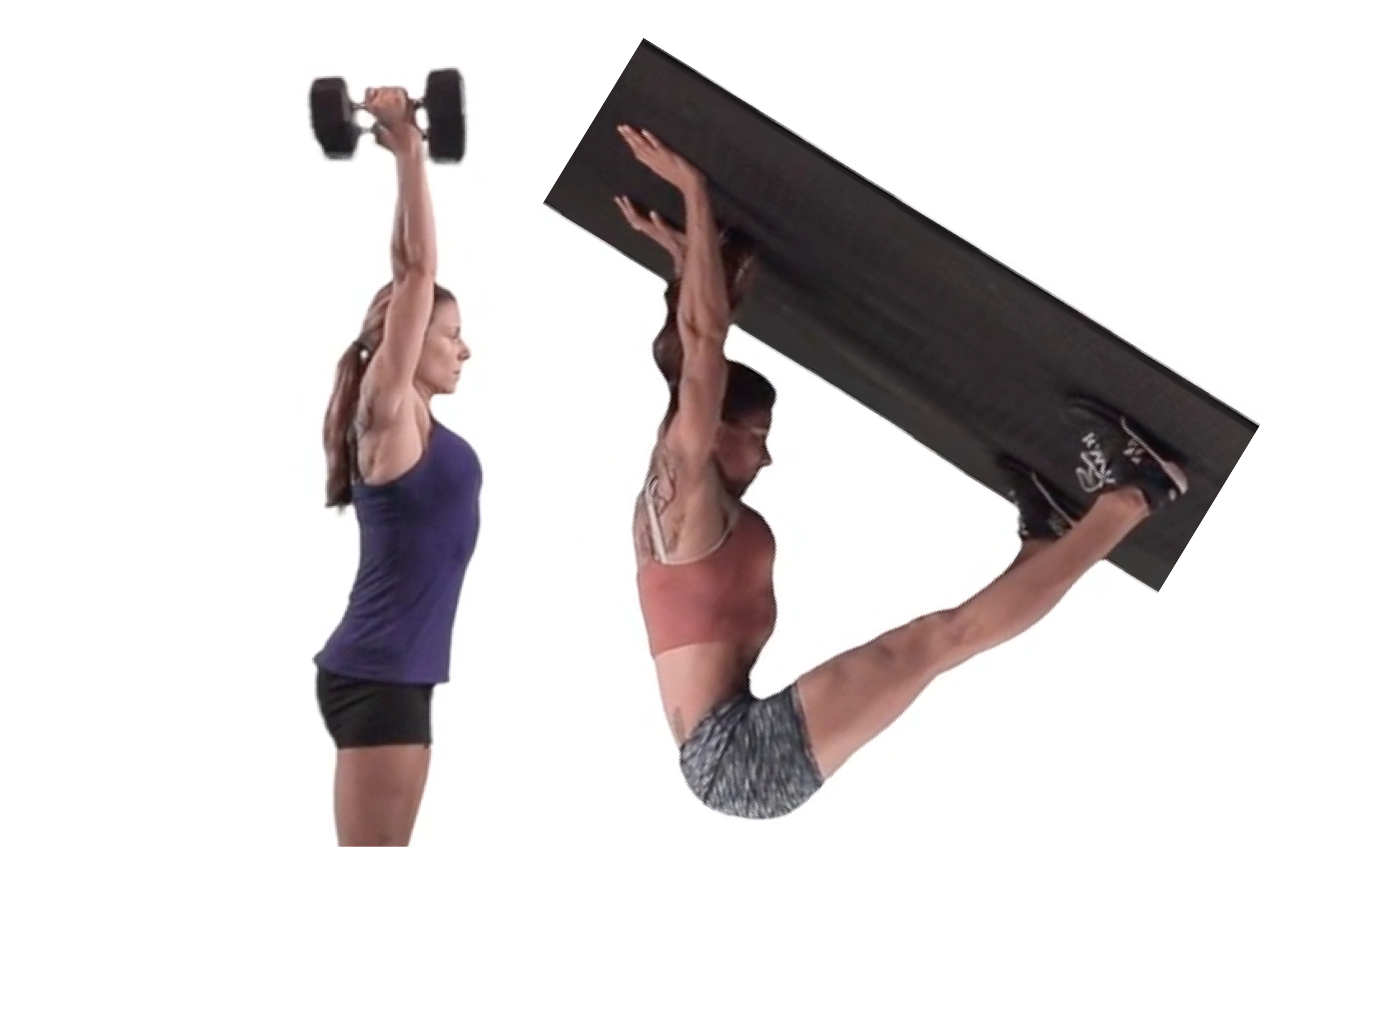 Press & pike pushup have the same top position. Pull chest through, arms by ears, tight belly